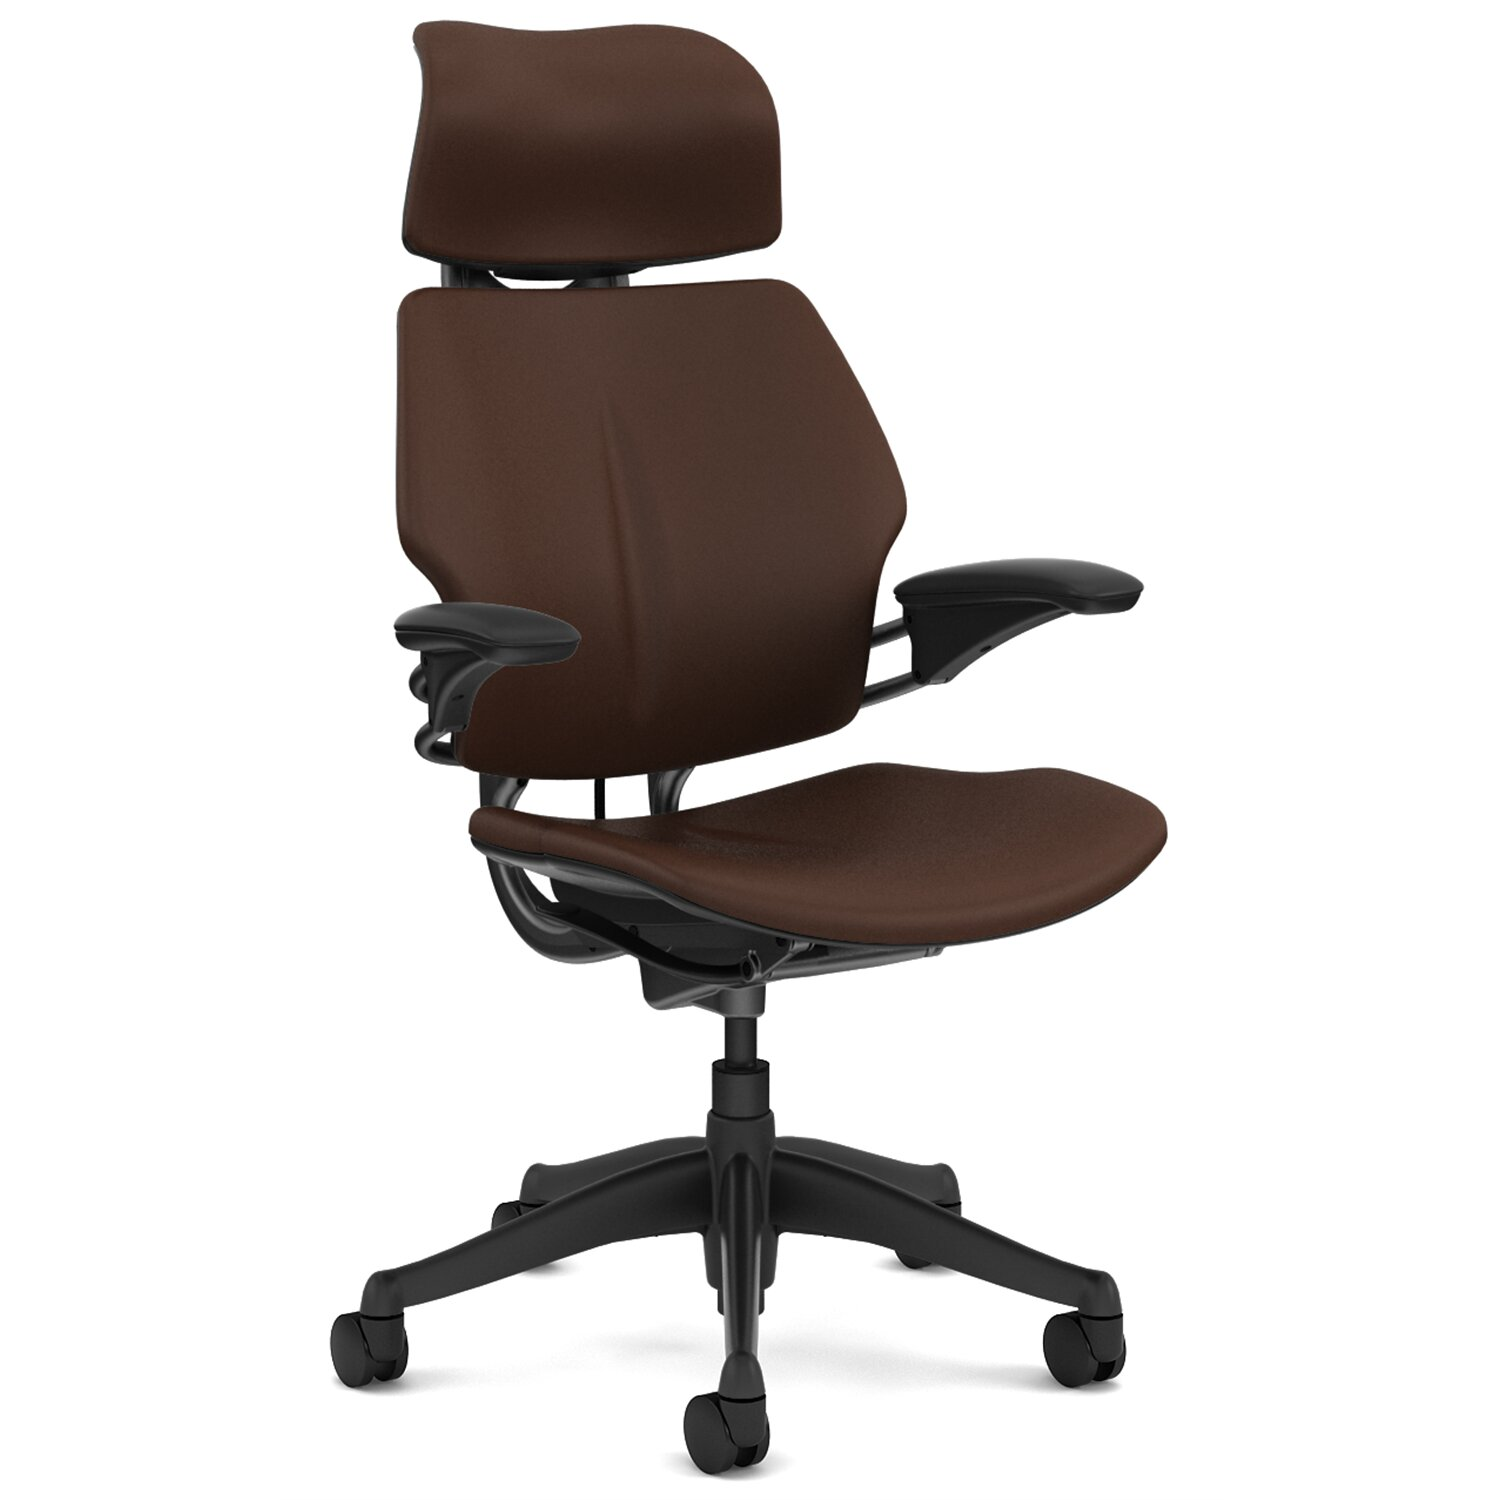 Humanscale Freedom Office Chair With Headrest Reviews